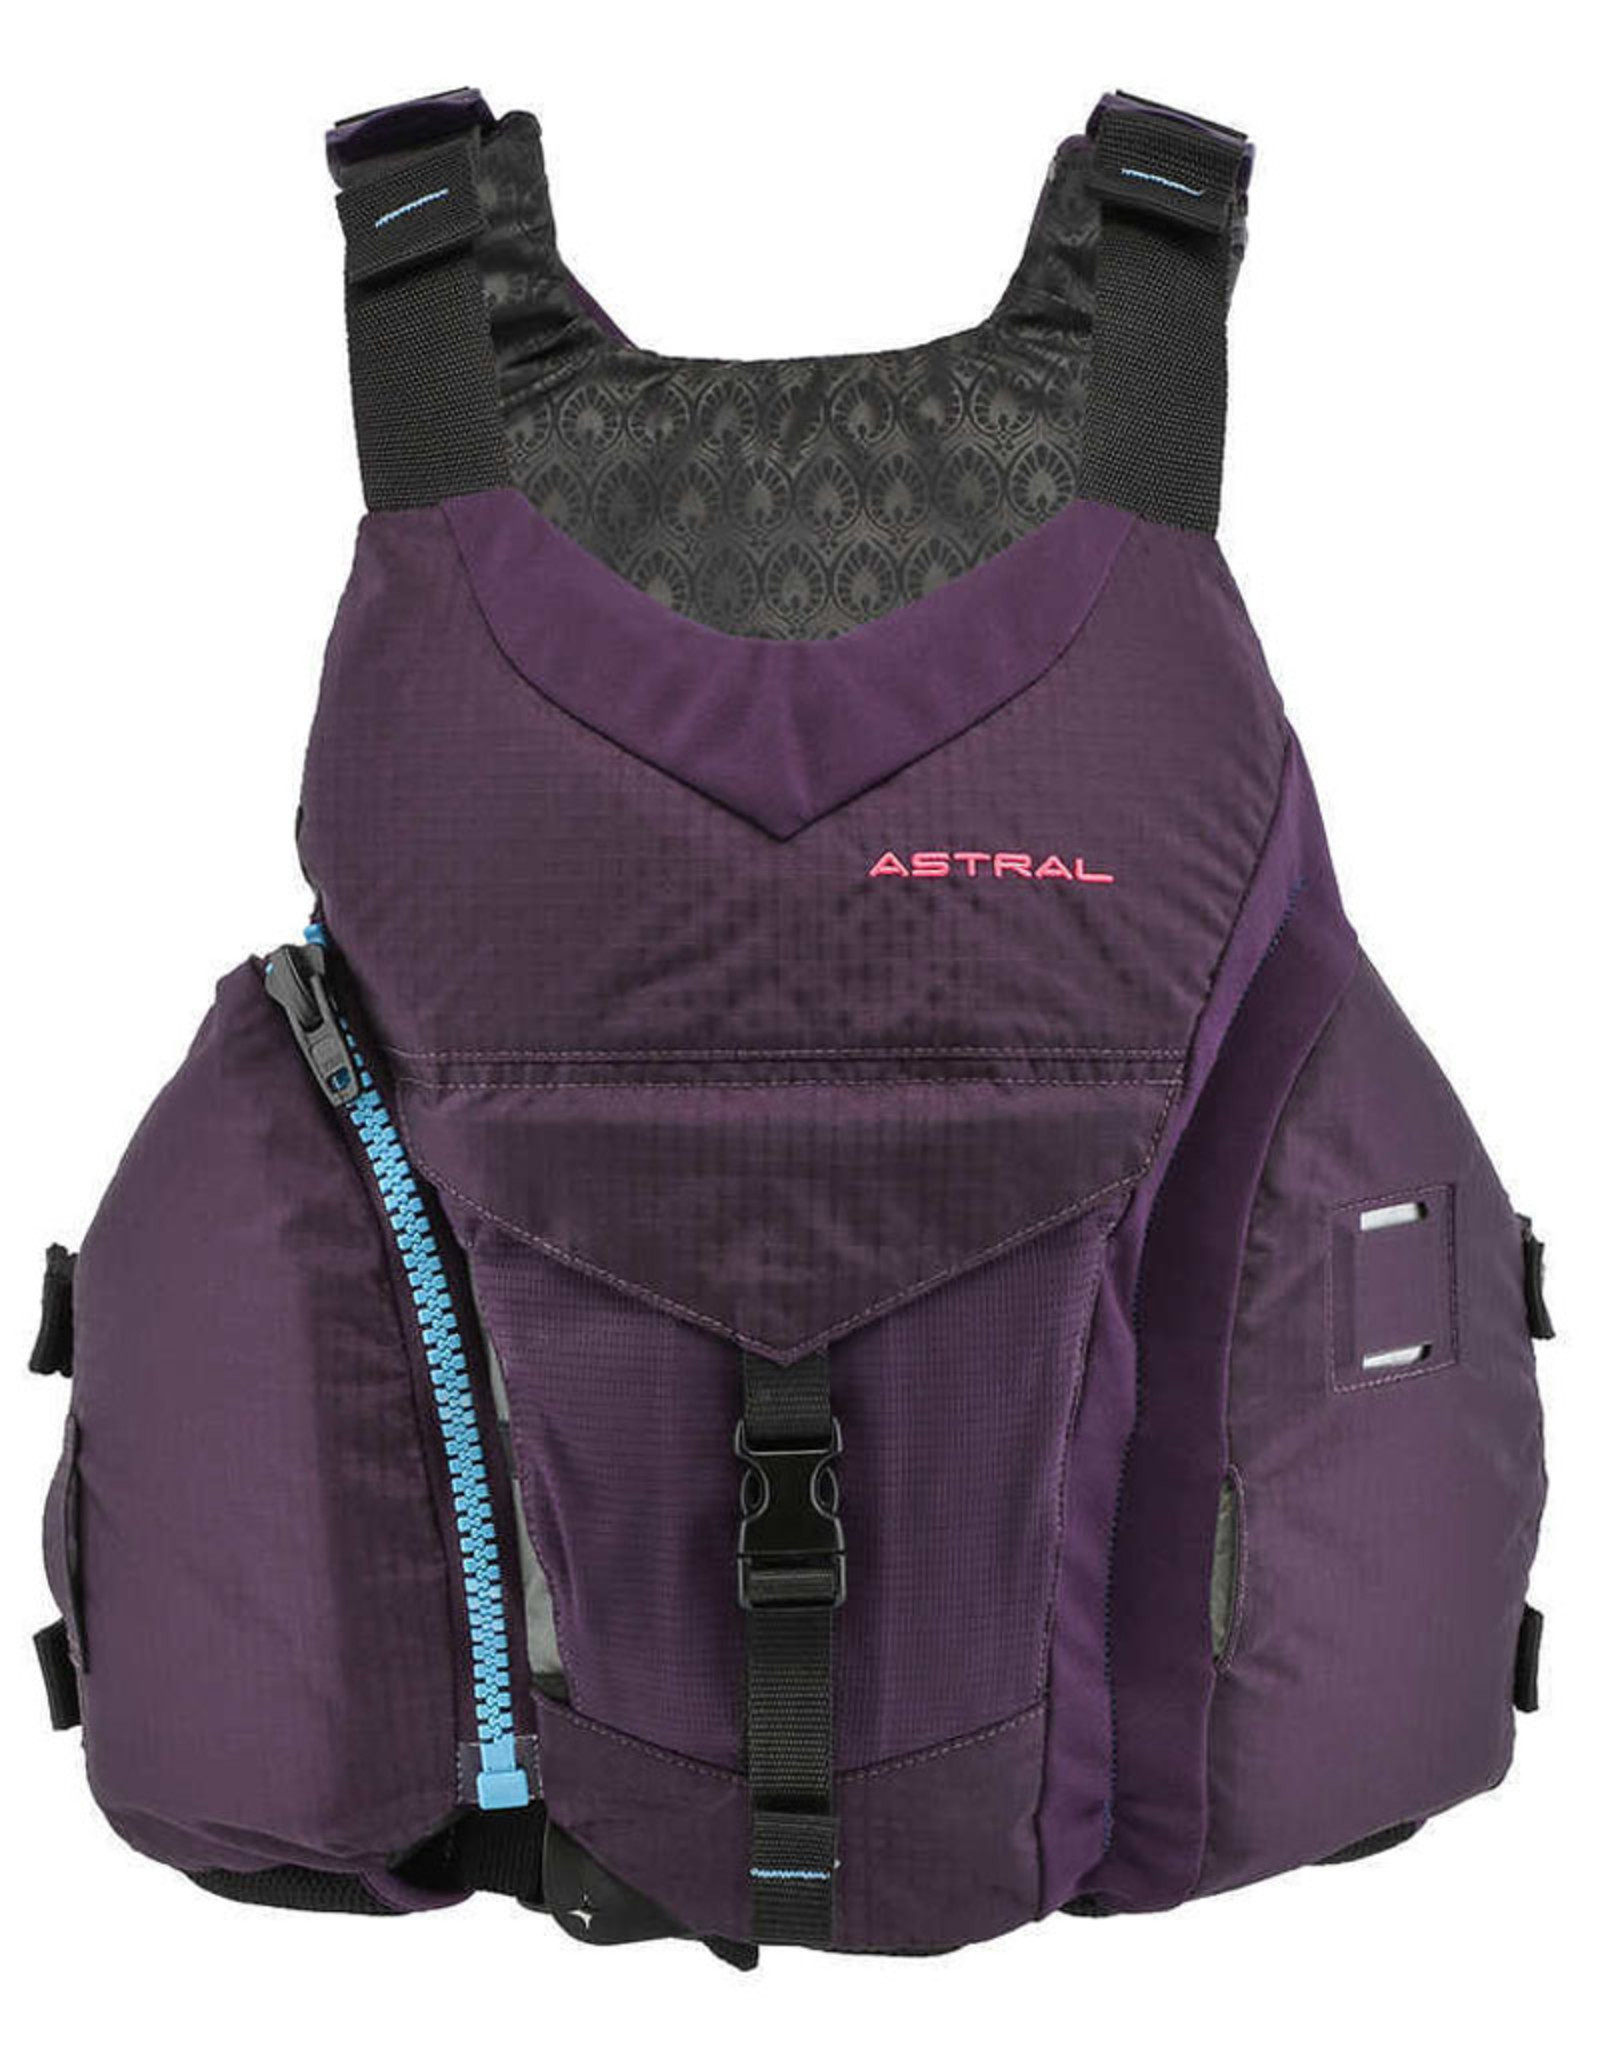 Astral Astral Layla Women's PFD